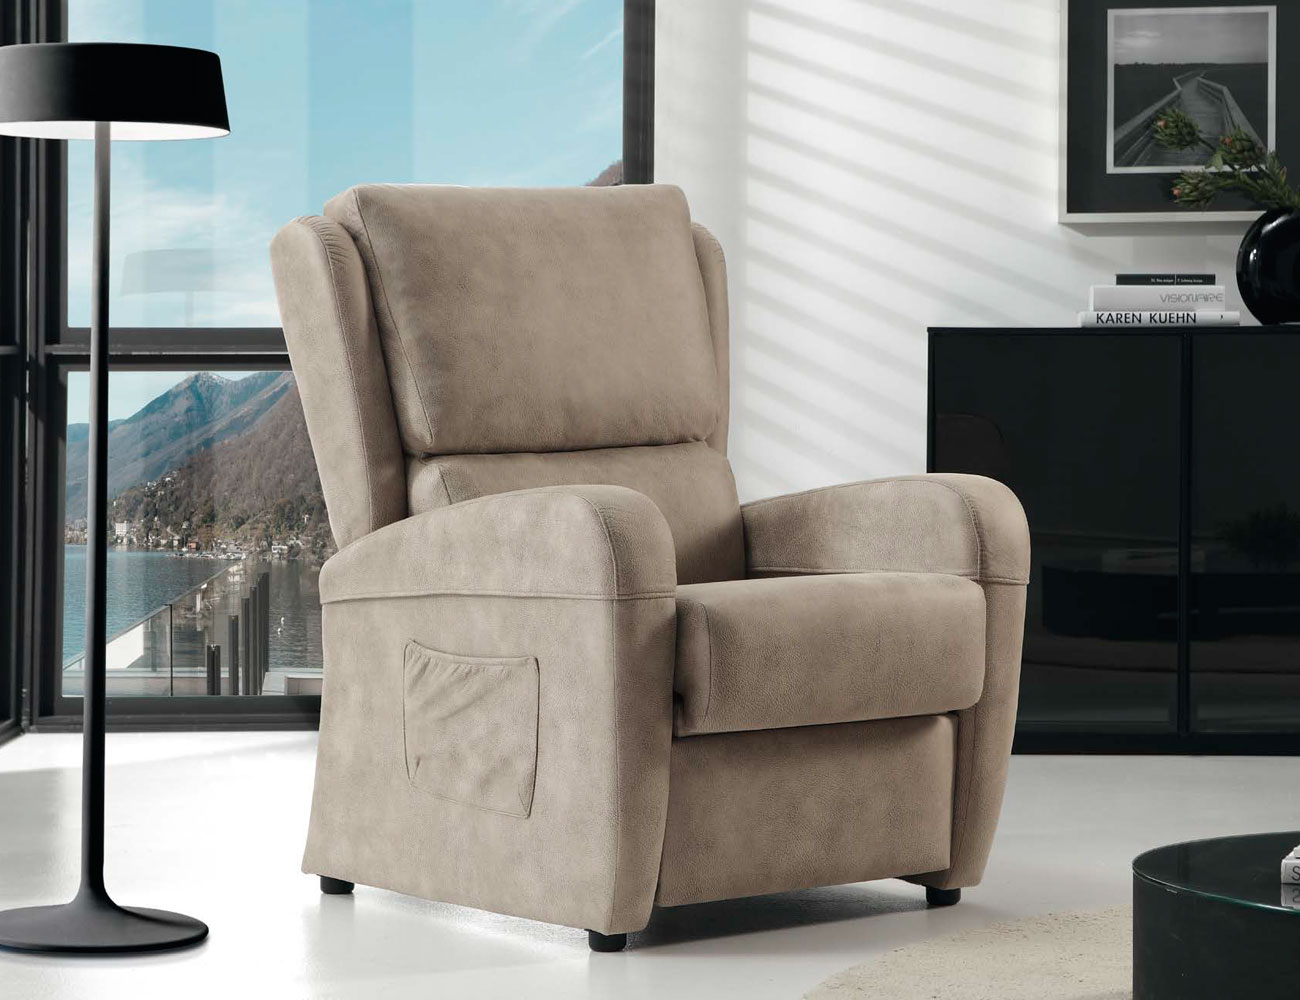 Sillon relax manual jana5